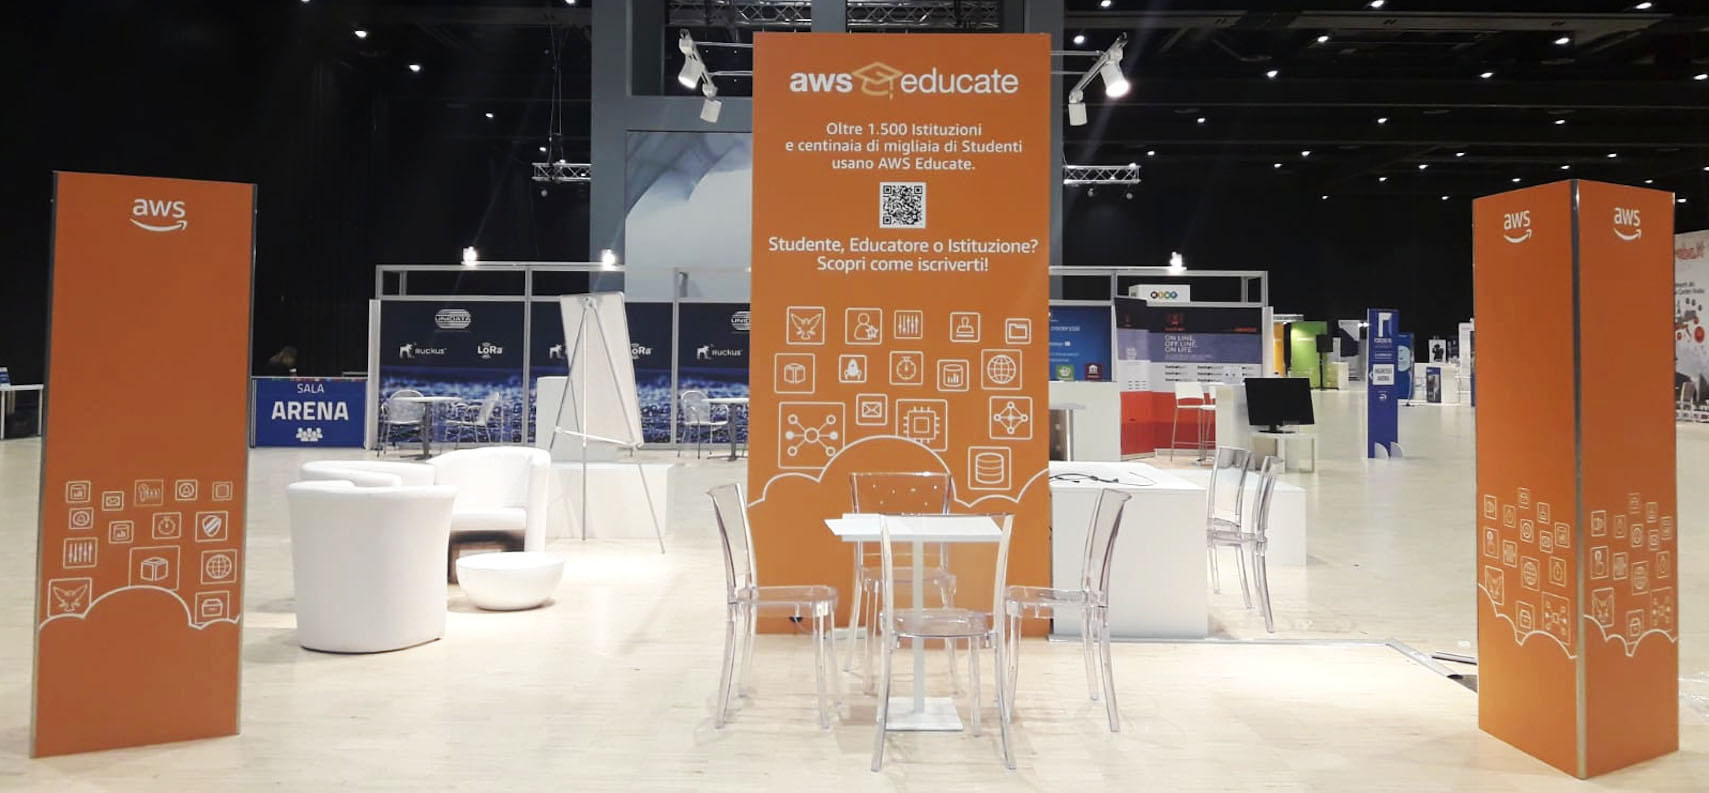 AWS booth at Forum PA fair created by ATC-Linea